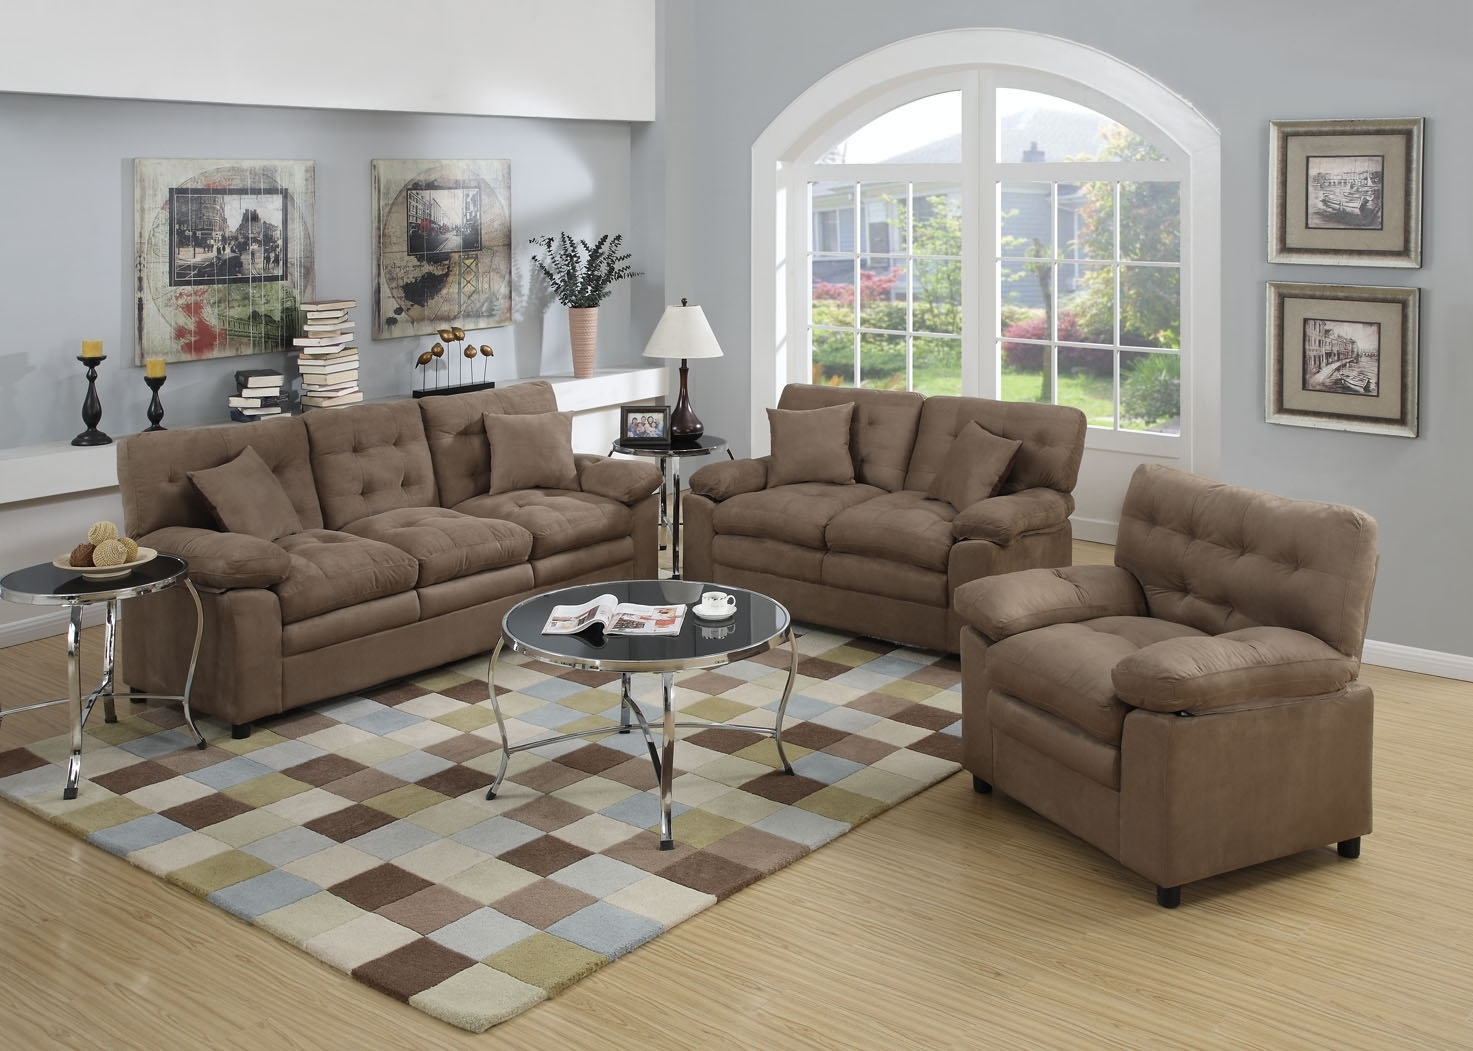 3 Piece Living Room Sofa Set: 10+ Choices Of Kingston Sectional Sofas